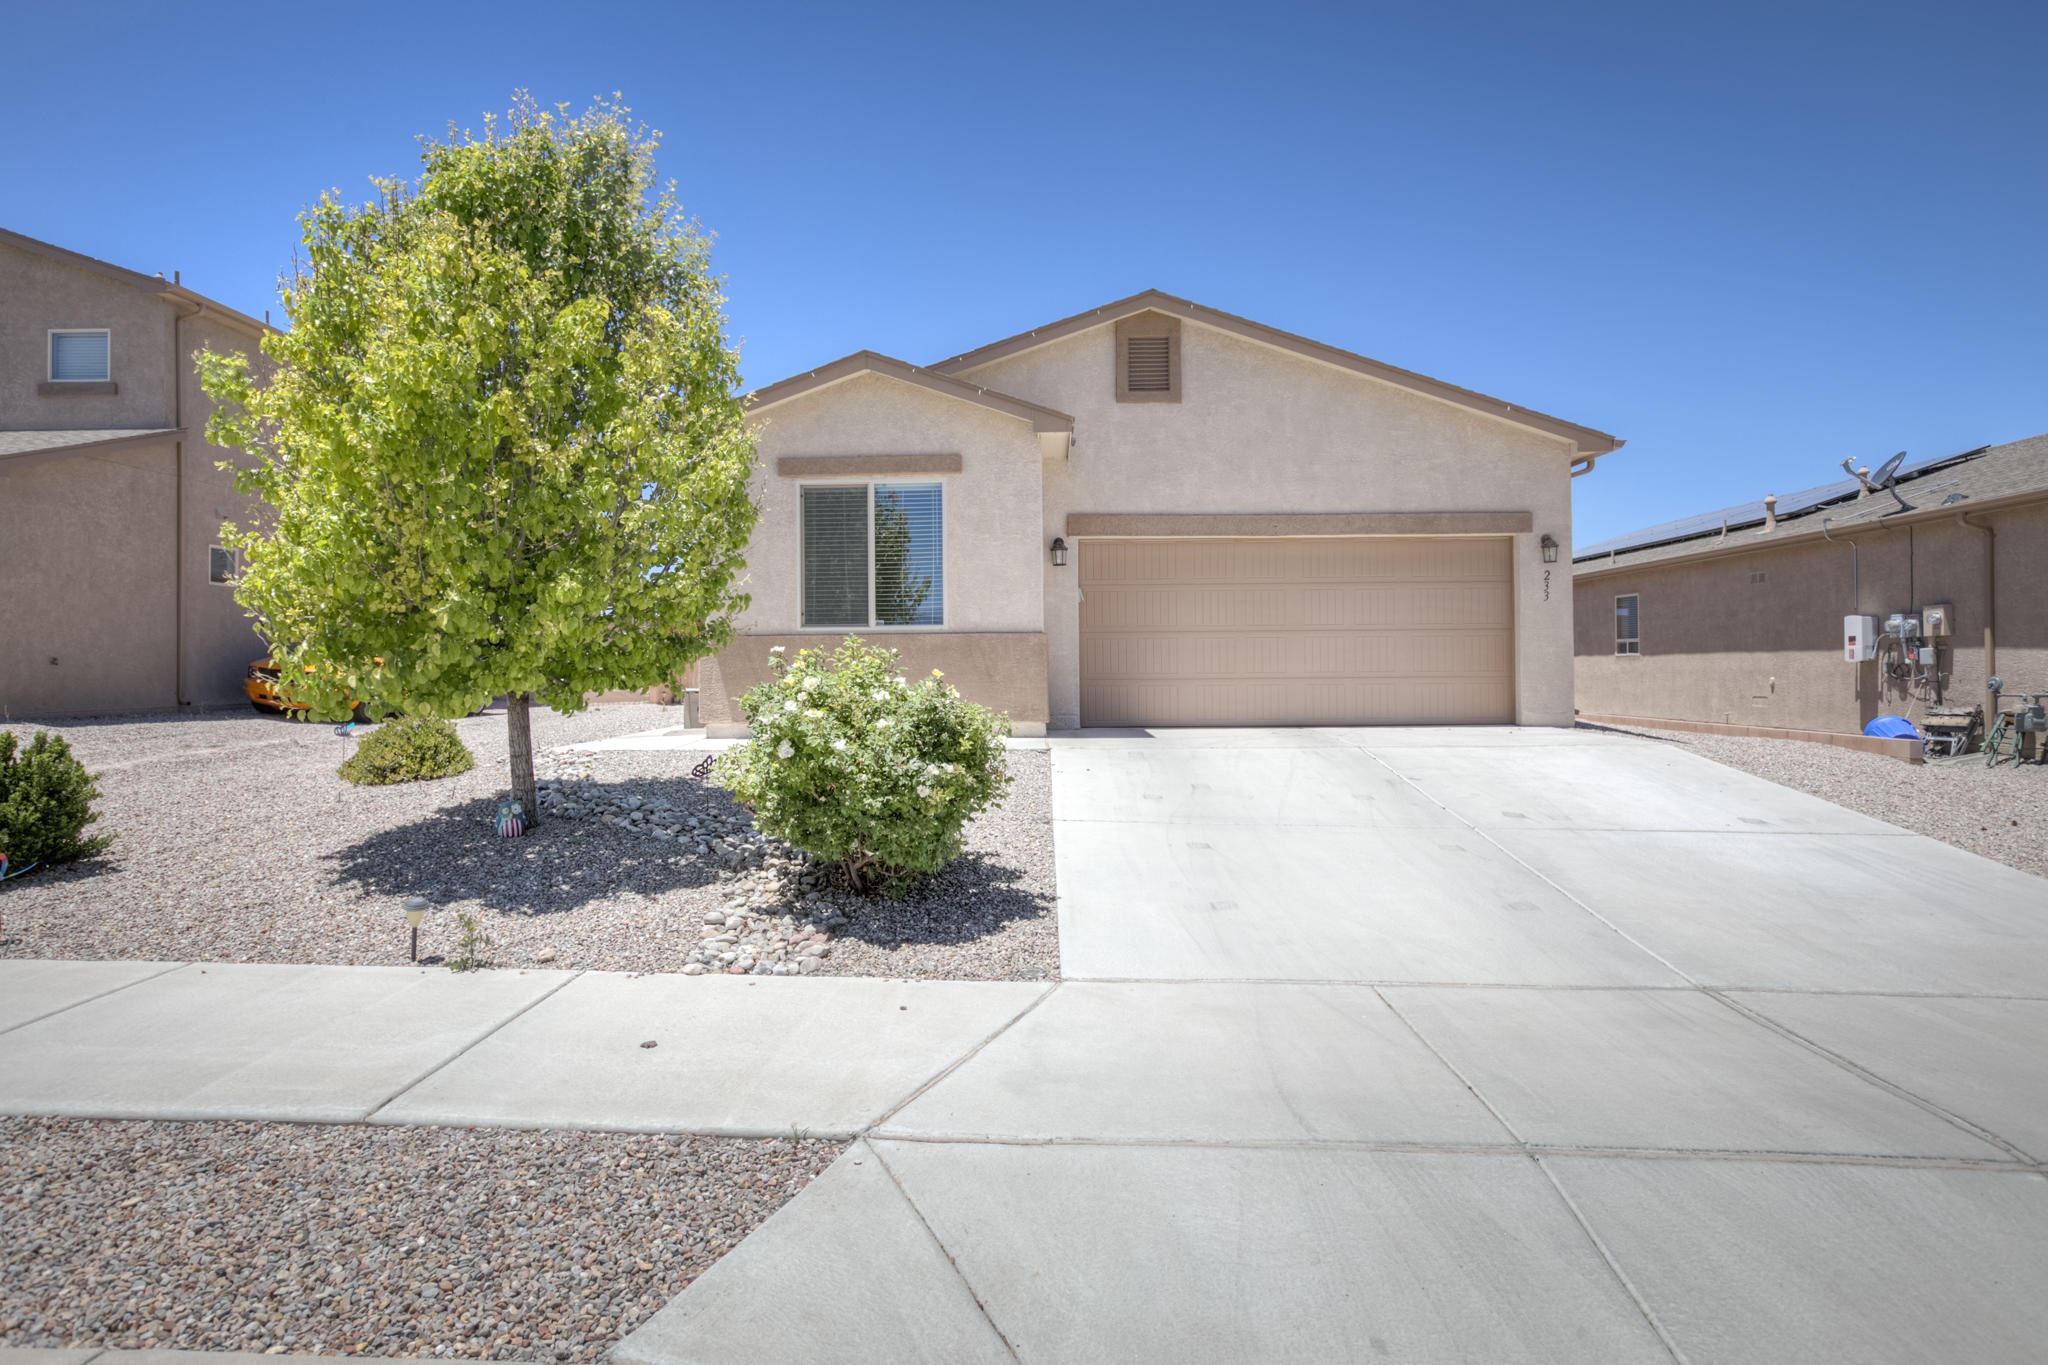 An open floorplan, a large expanded covered patio and plenty of upgrades await the new owner of this newer, green built house in Rio Rancho.  The wide-open great room includes upgraded 18-inch ceramic tile that spans into the dining room and kitchen.  The kitchen has plenty of spacious cabinets that span across to a large kitchen island for added counter and cabinet space.  Kitchen includes all stainless-steel appliances along with refrigerator.  In addition to three bedrooms, the home includes an additional room that could be used as a home office or playroom.  Additionally solar panel system to help keep utility costs to a minimum.  Come make this move in ready house your home.